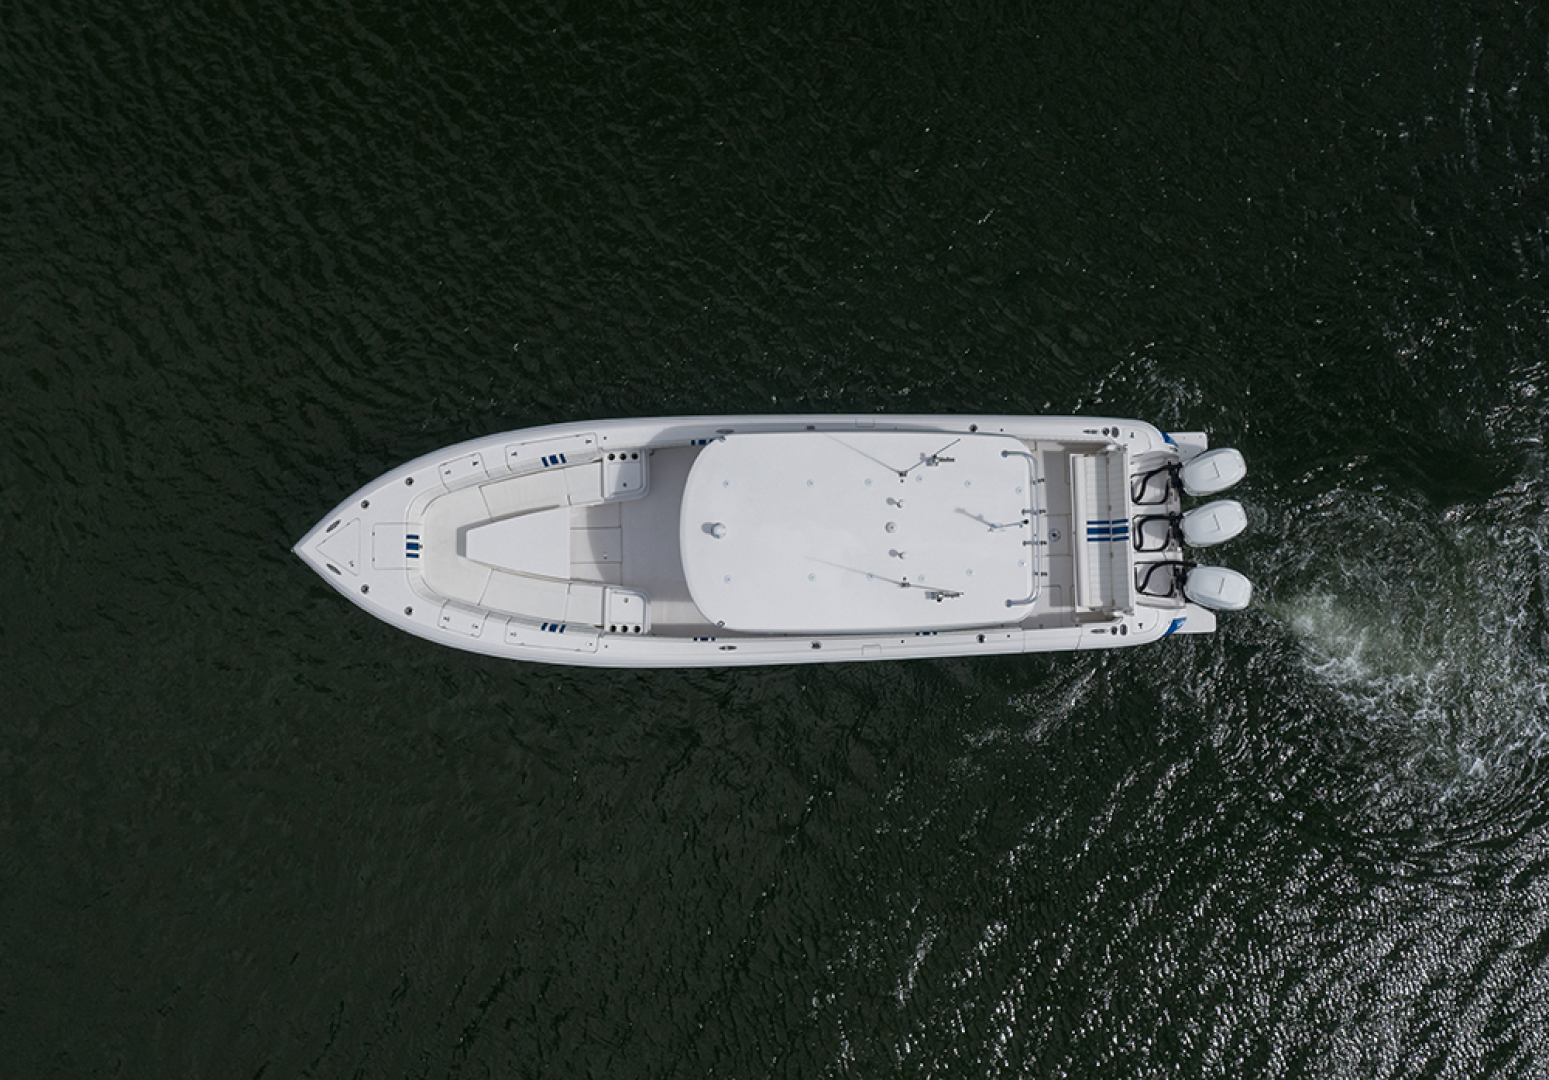 Intrepid-400 Center Console 2017-SPONTANEOUS Marco Island-Florida-United States-Aerial view-1537598 | Thumbnail